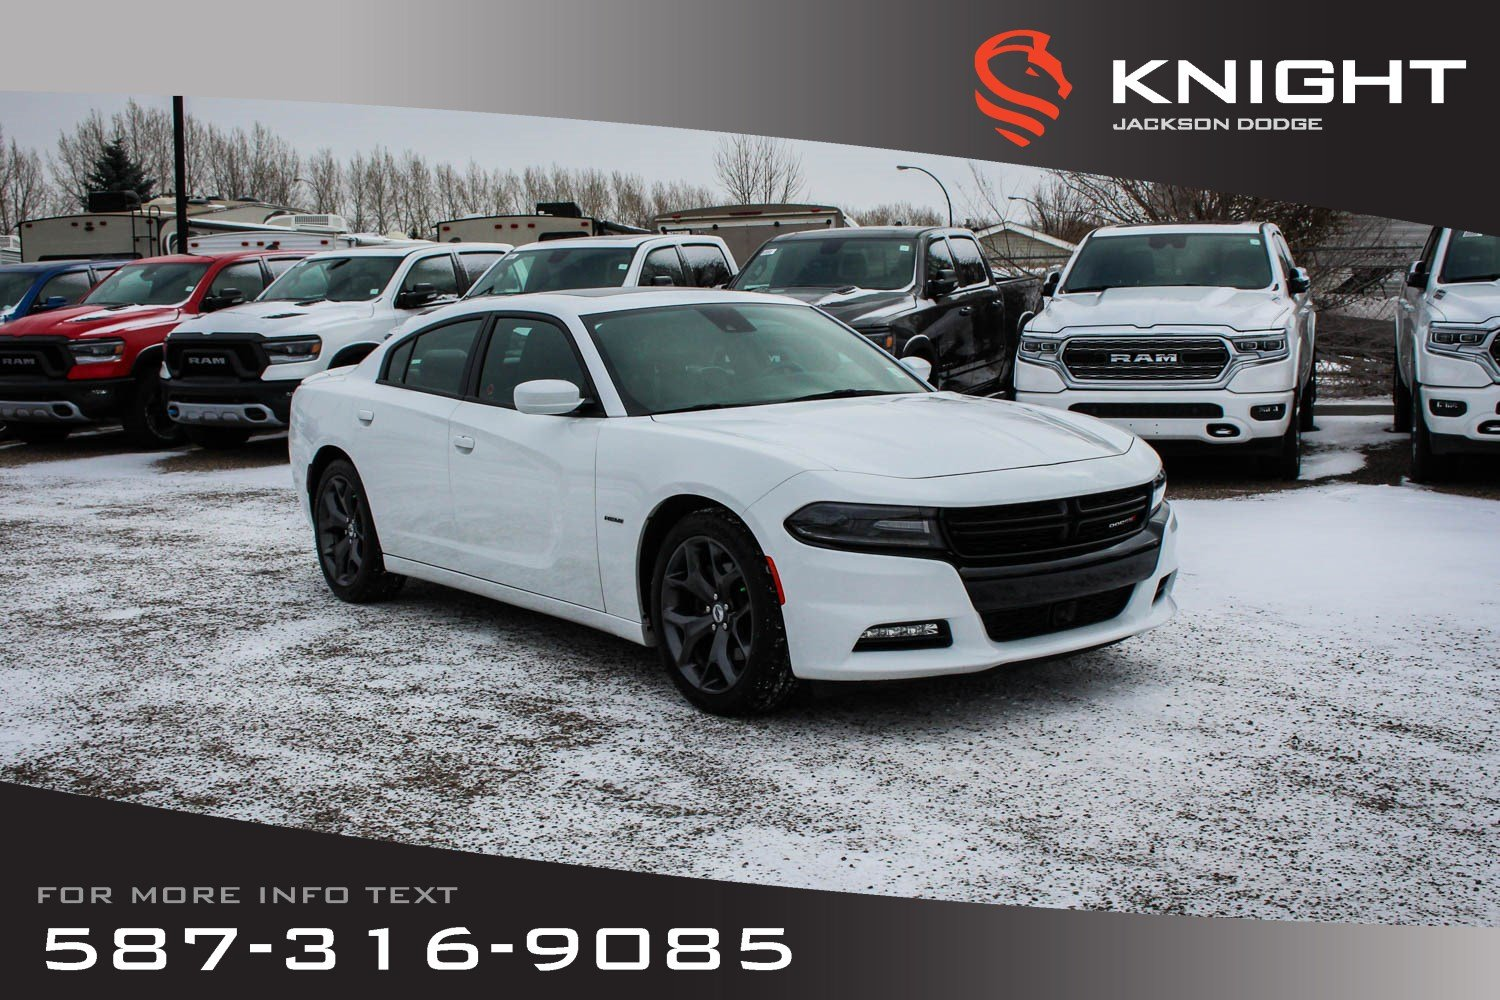 Pre-Owned 2017 Dodge Charger R/T - Leather, Sunroof, NAV